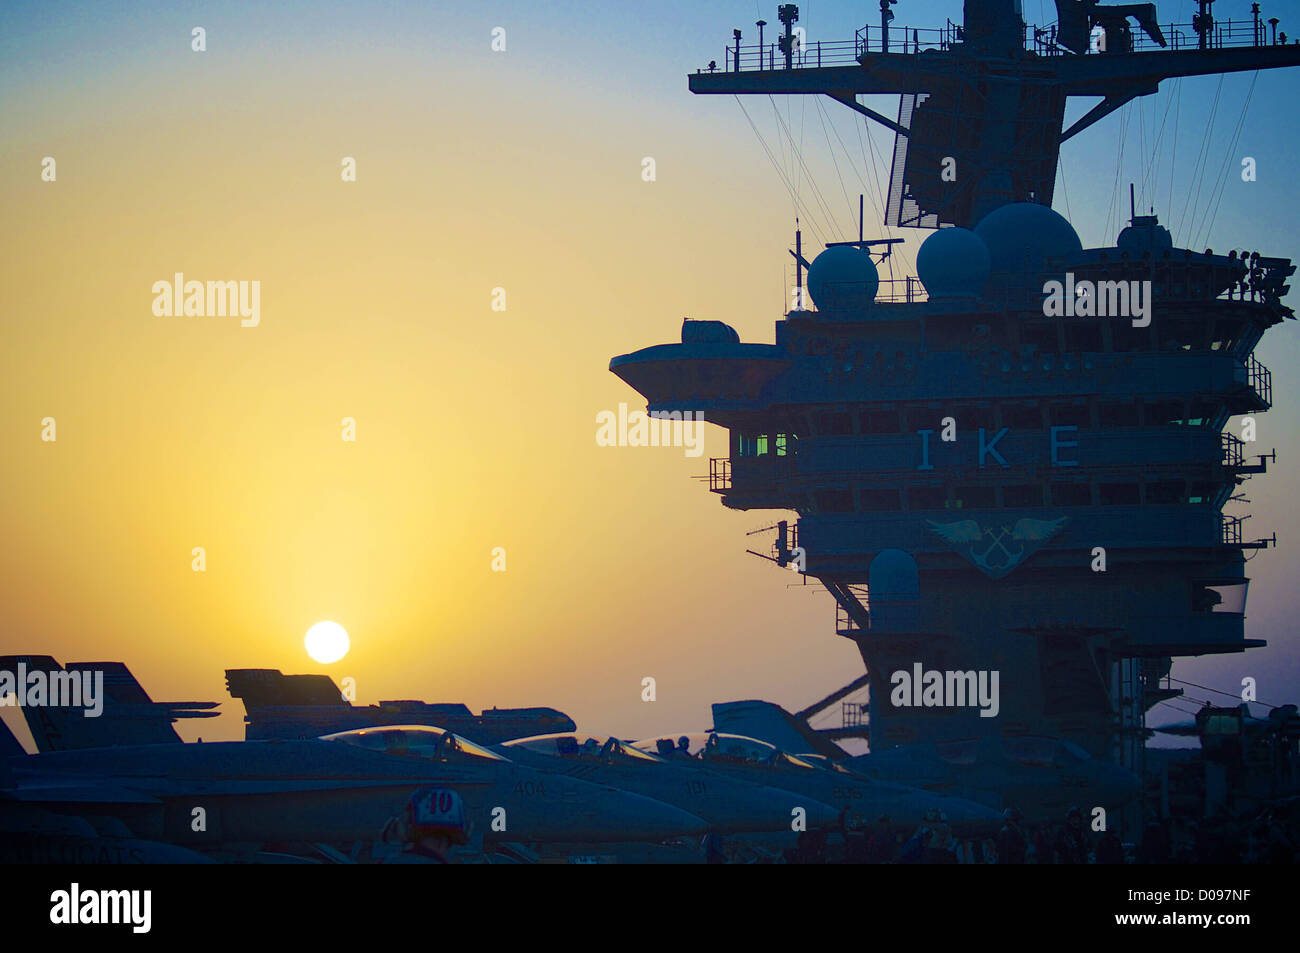 The Nimitz-class aircraft carrier USS Dwight D. Eisenhower (CVN 69) prepares for night operations as the sun sets. Stock Photo